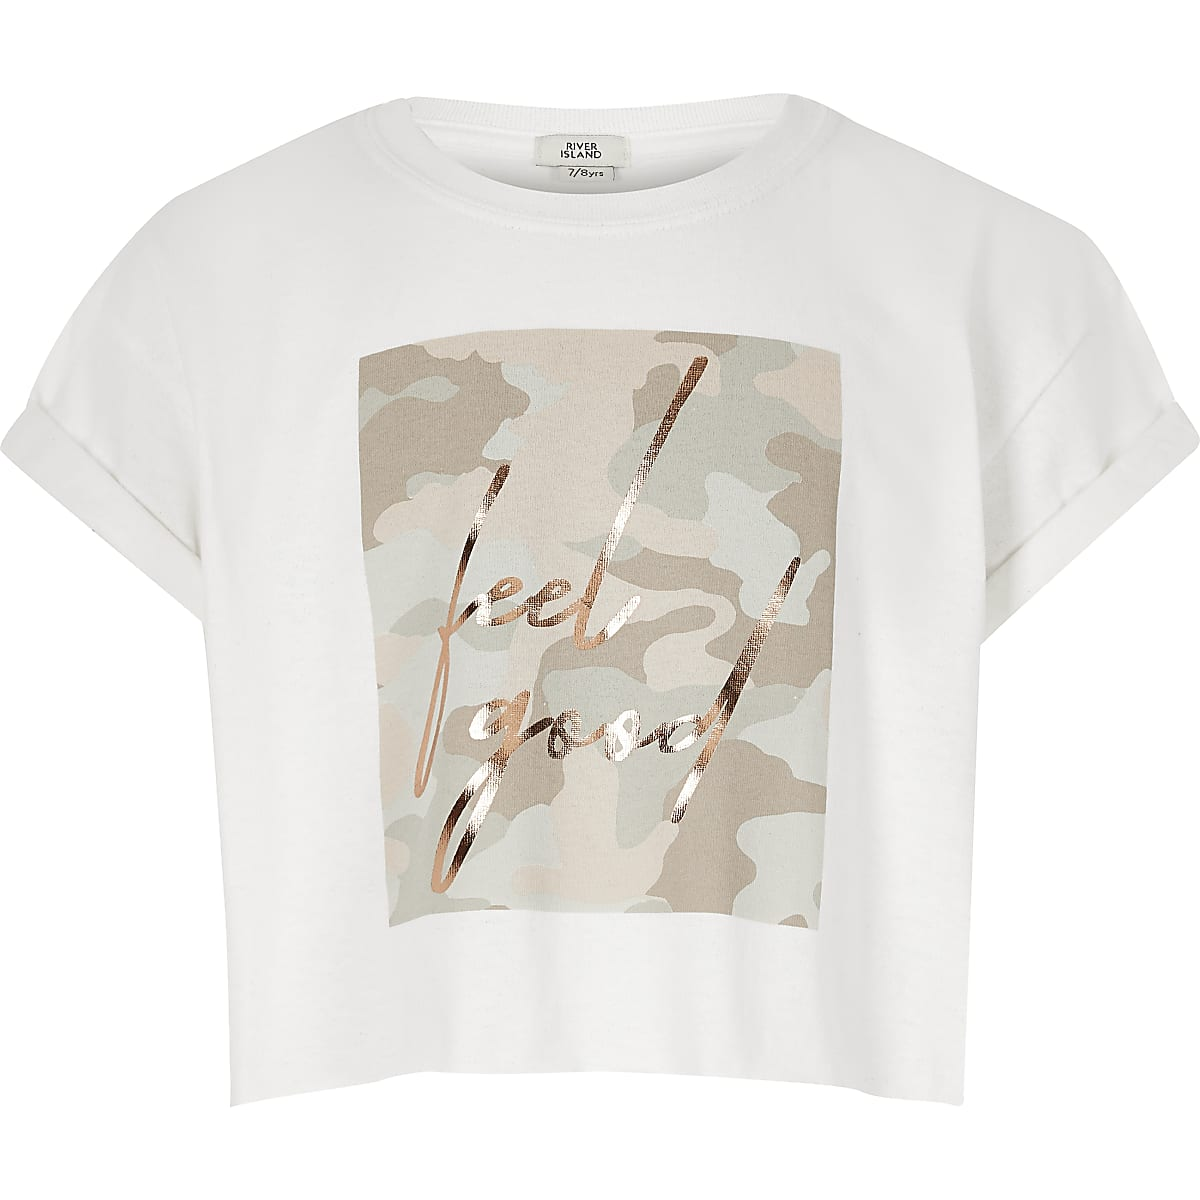 Girls camo print 'Feel Good' T-shirt